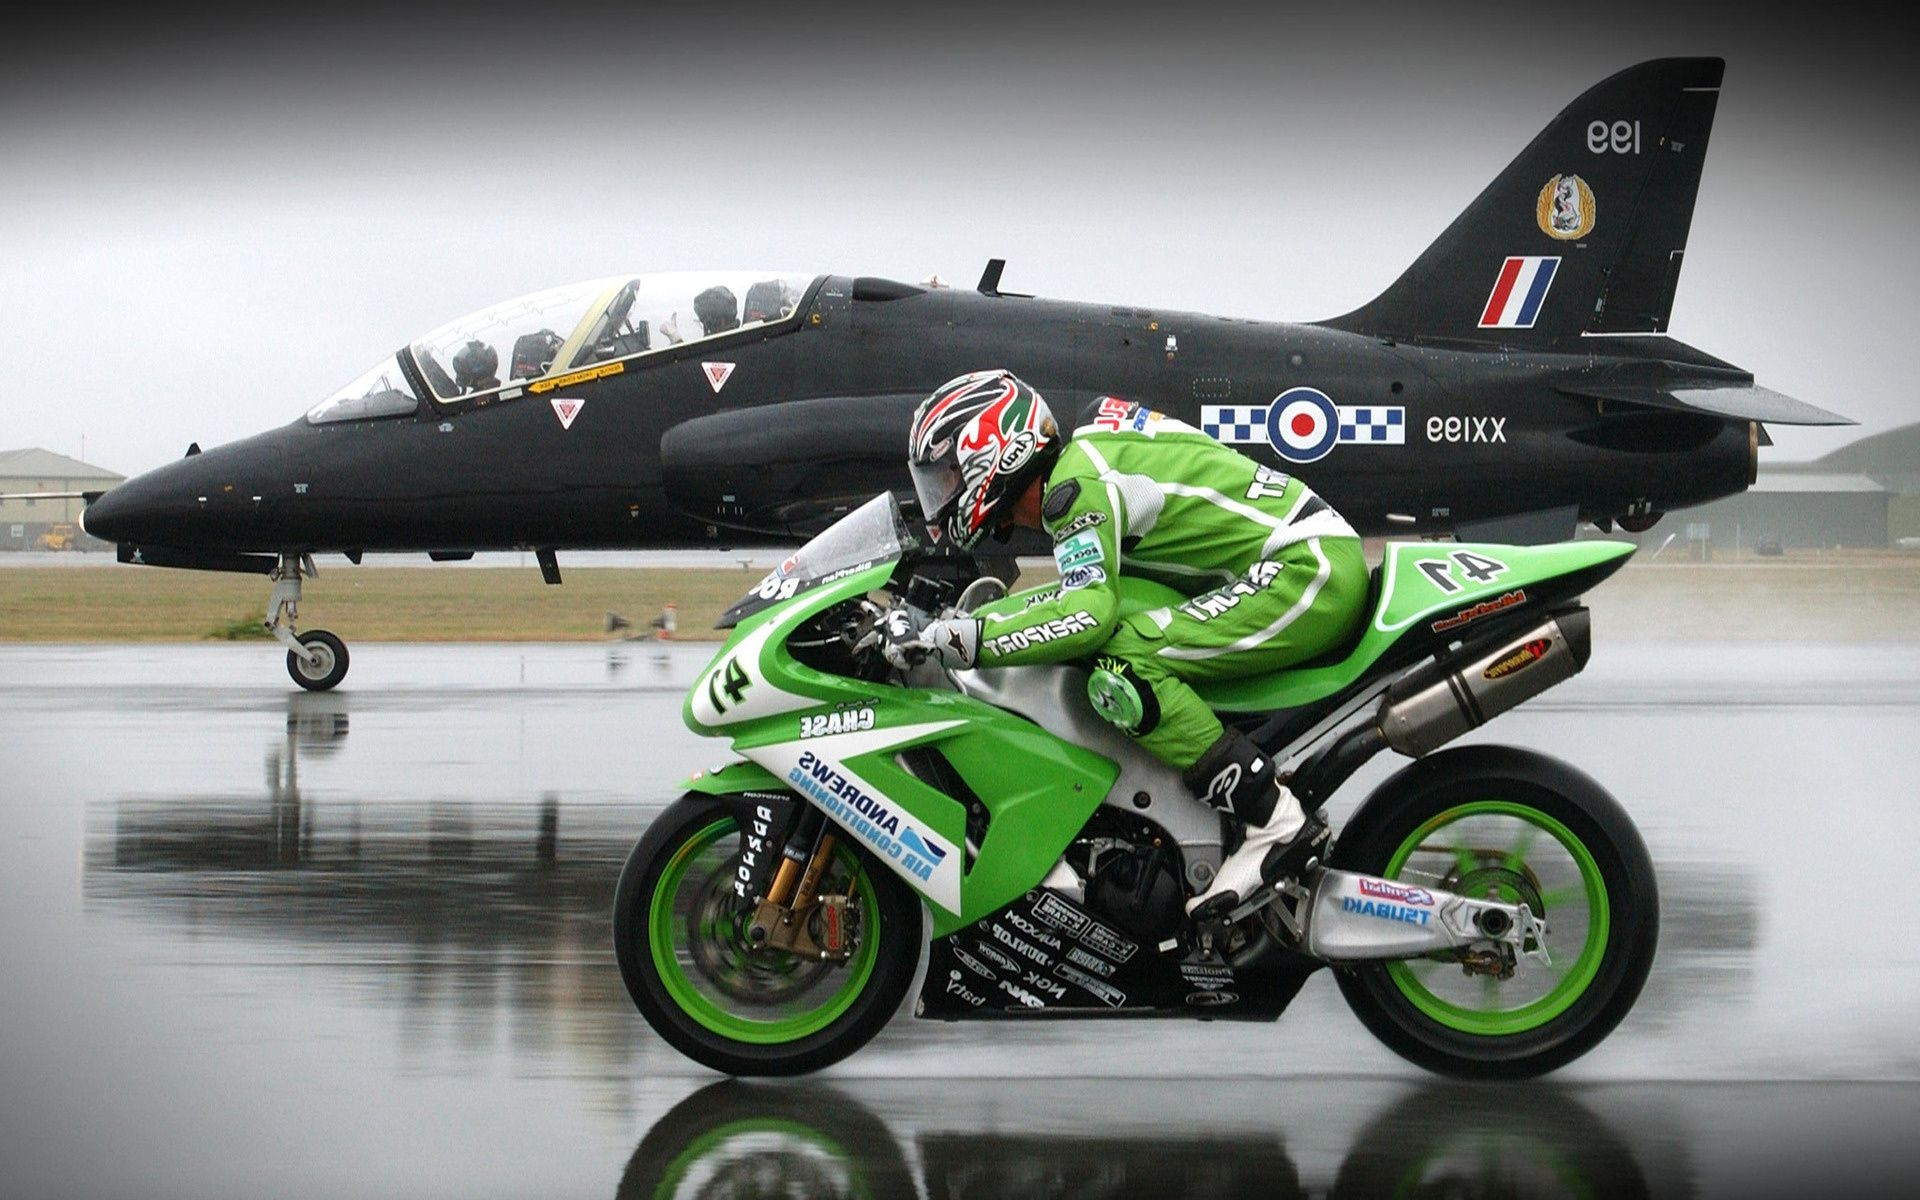 sport bike race vehicle competition auto racing bike action transportation system track championship fly fast